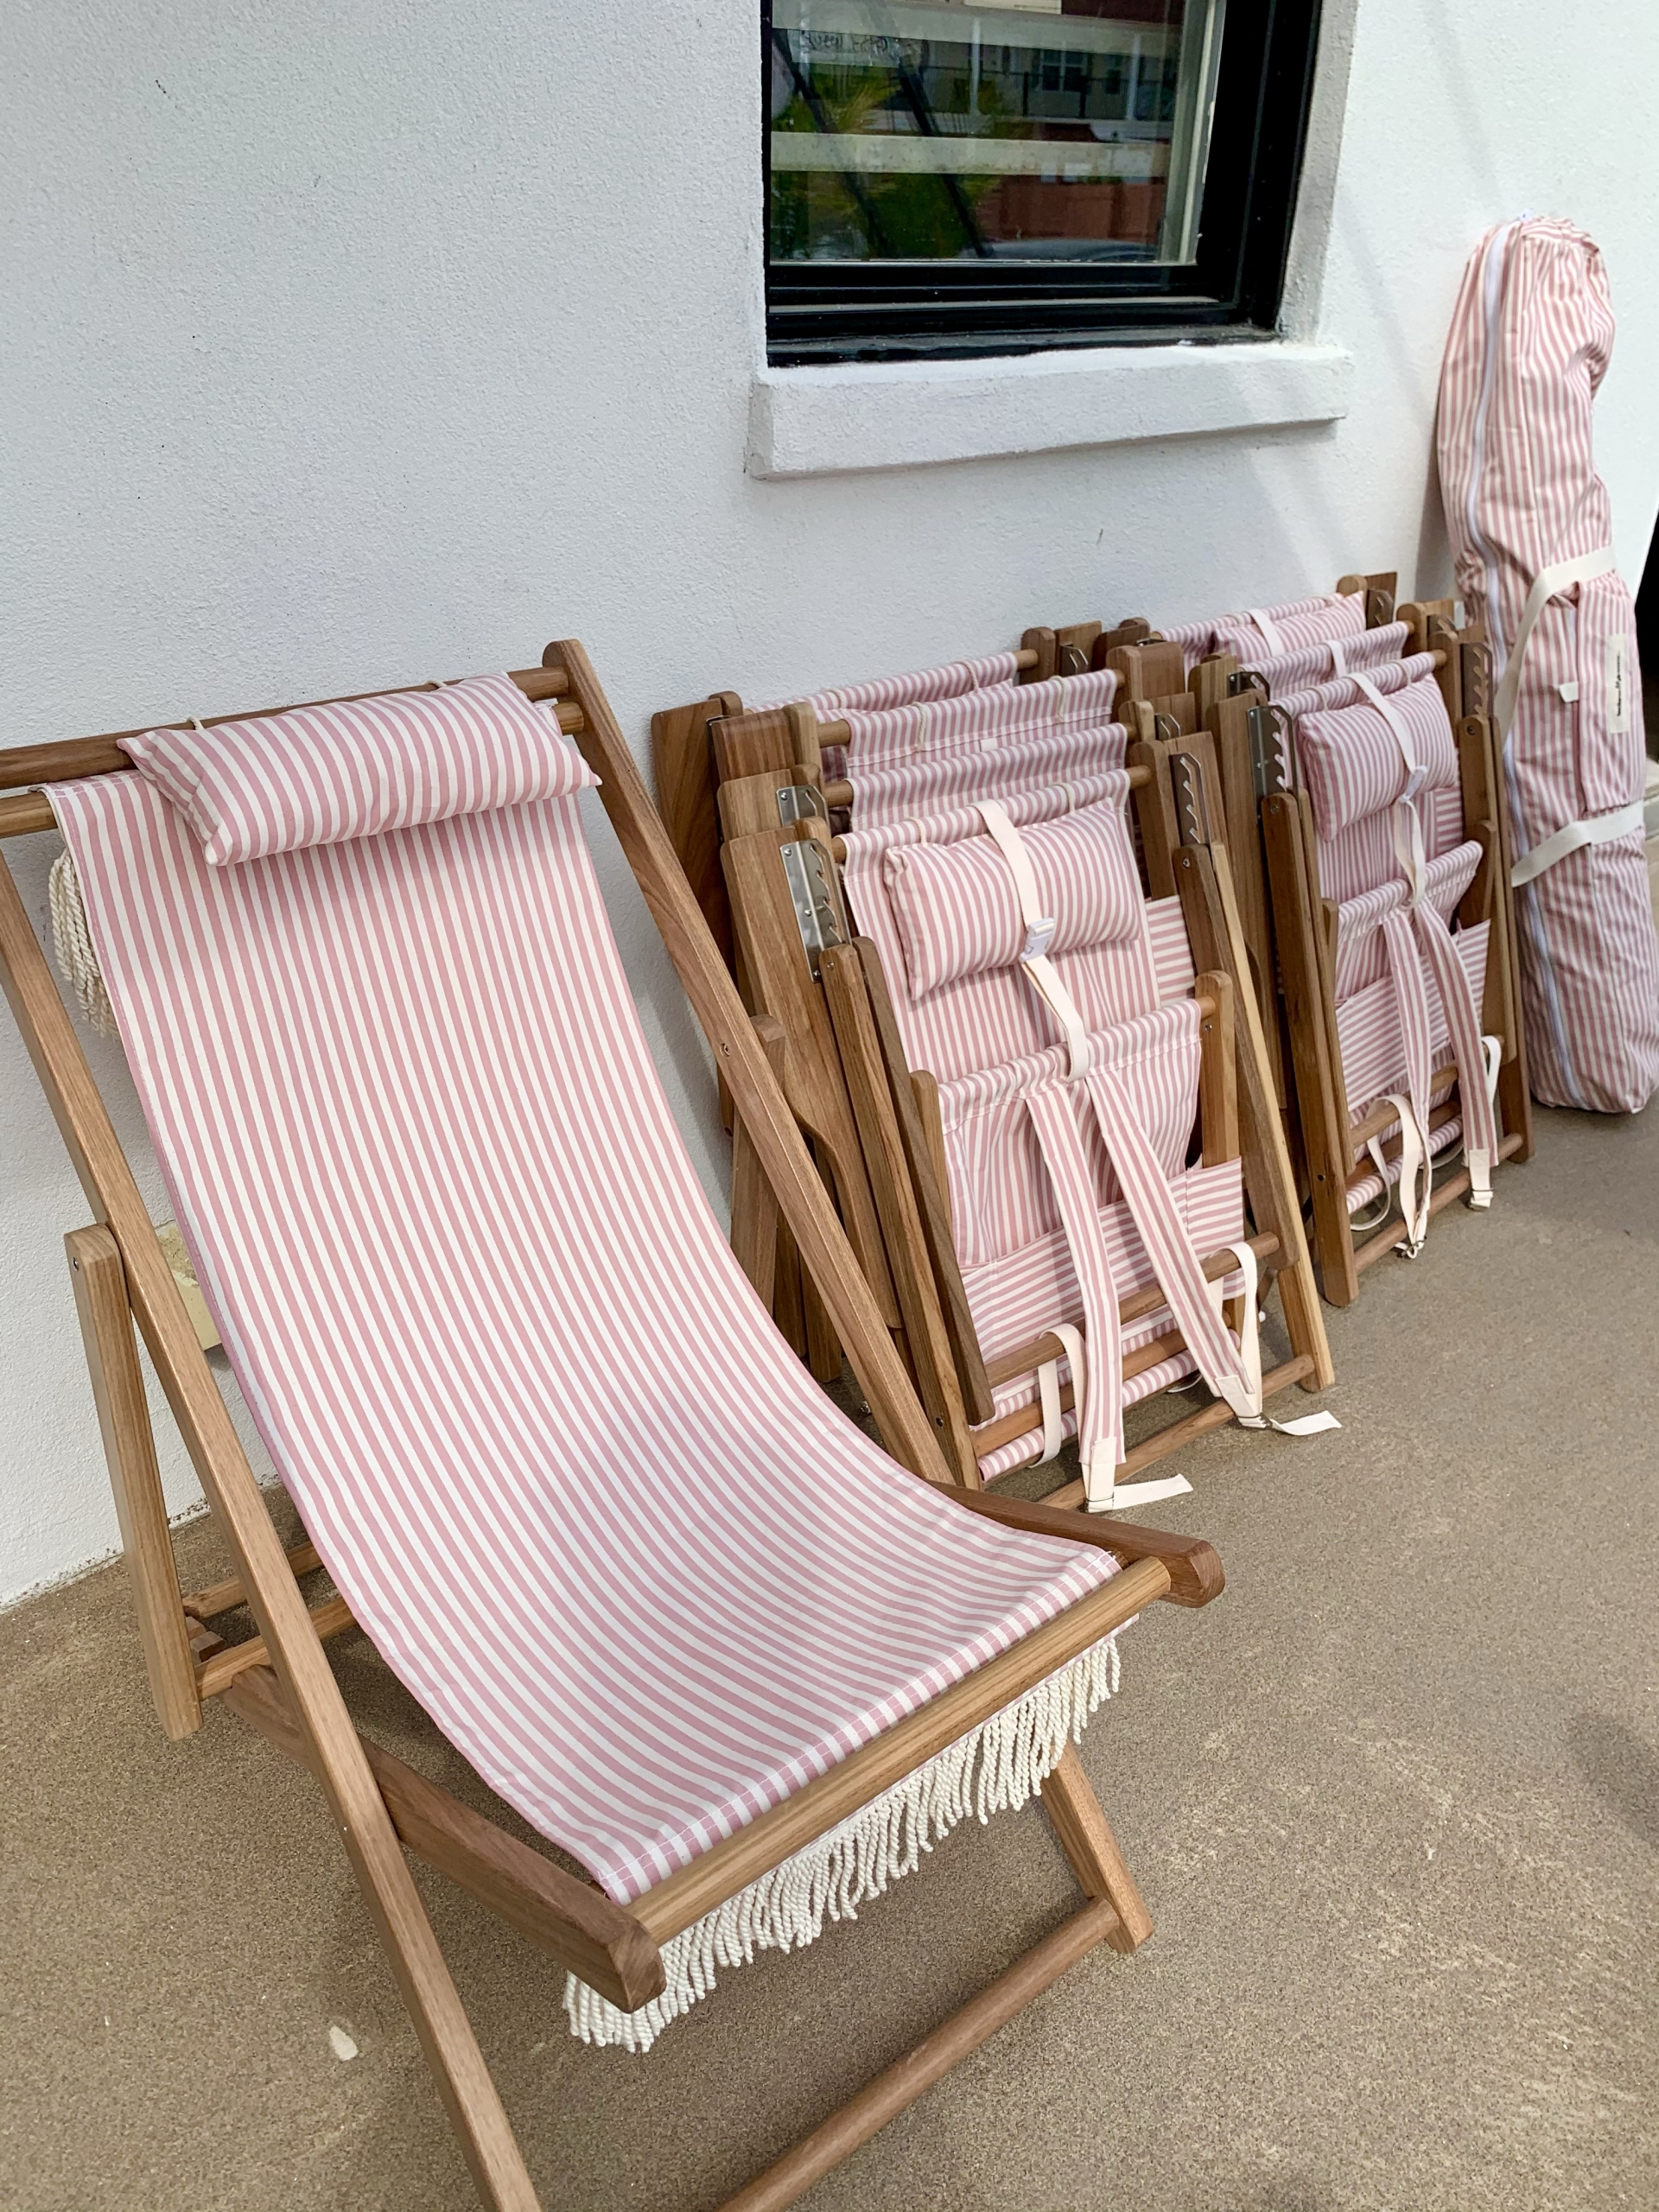 Complimentary Beach Chairs The Shore House